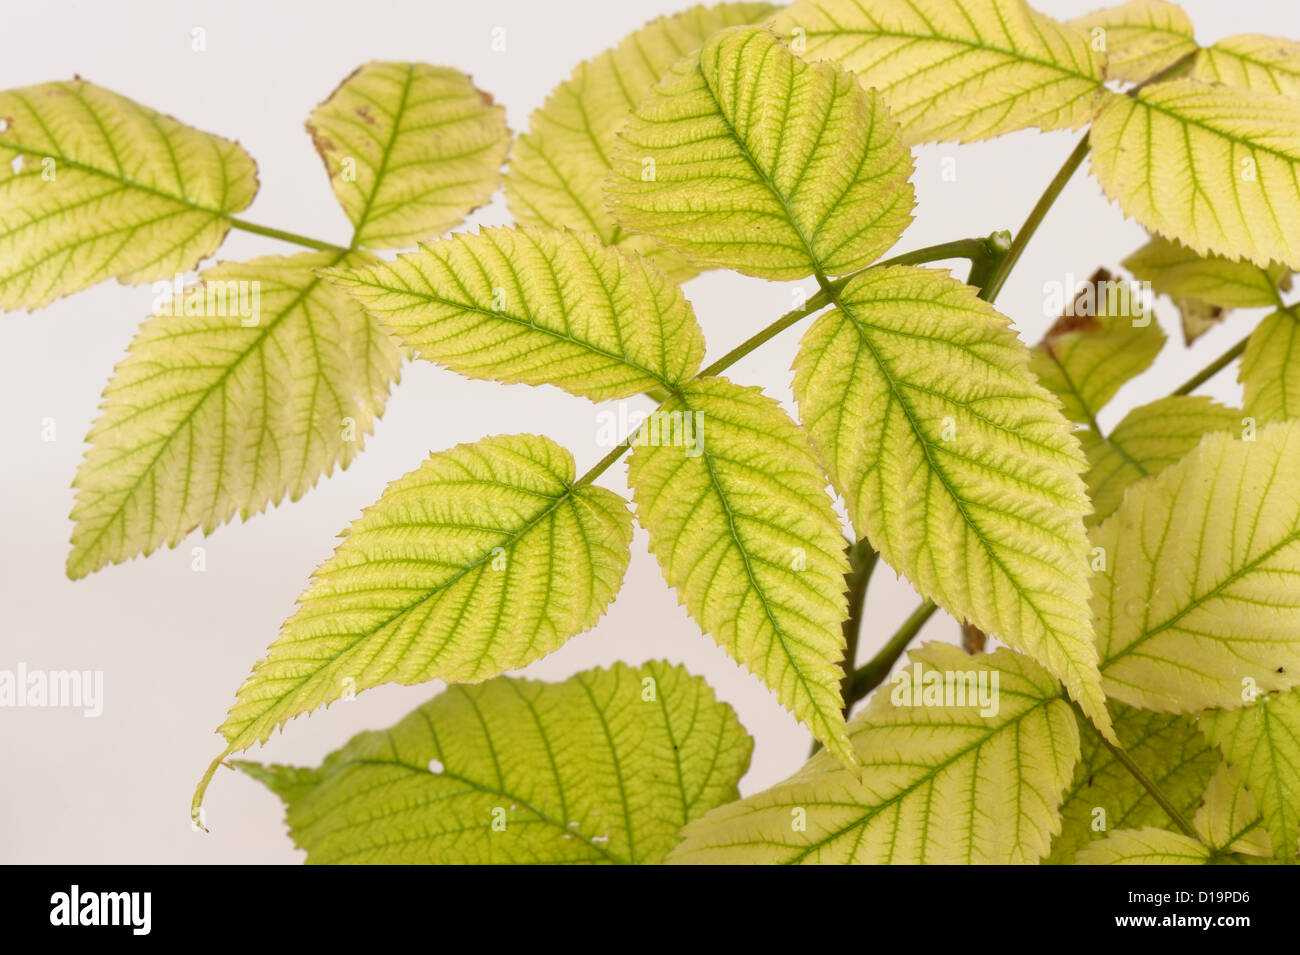 Residual damage to young raspberry foliage caused by glyphosate contamination - Stock Image